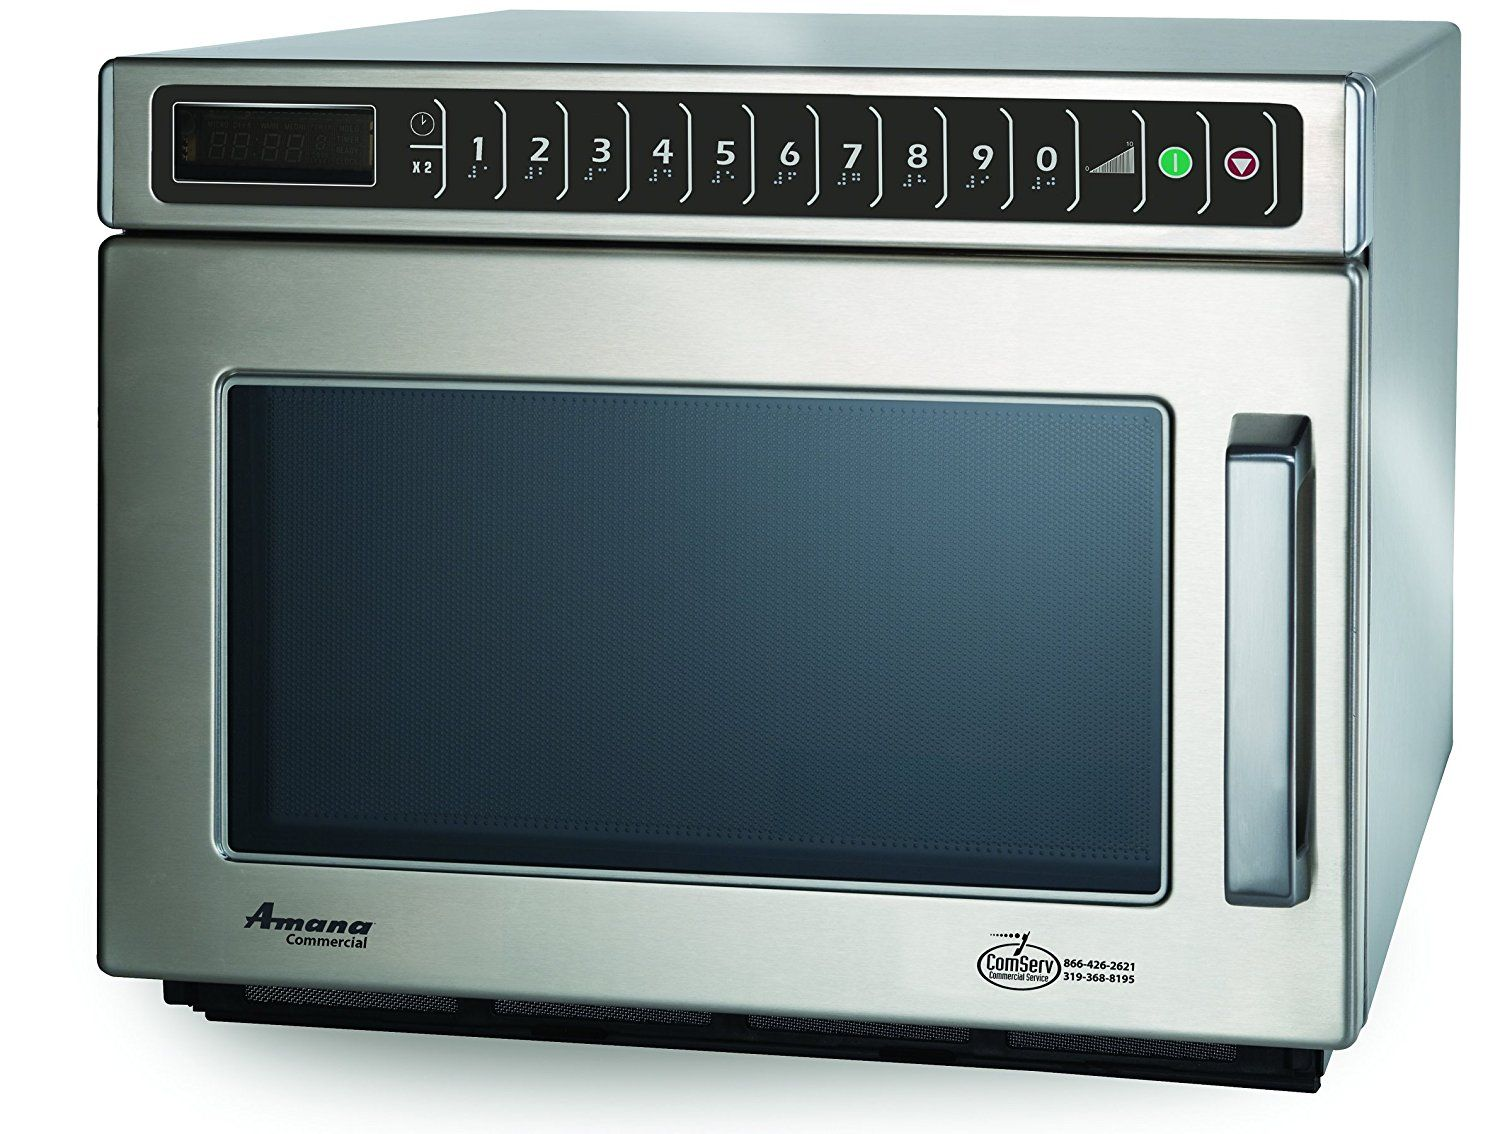 Pin By Antique Web On Amana Microwaves With Images Microwave